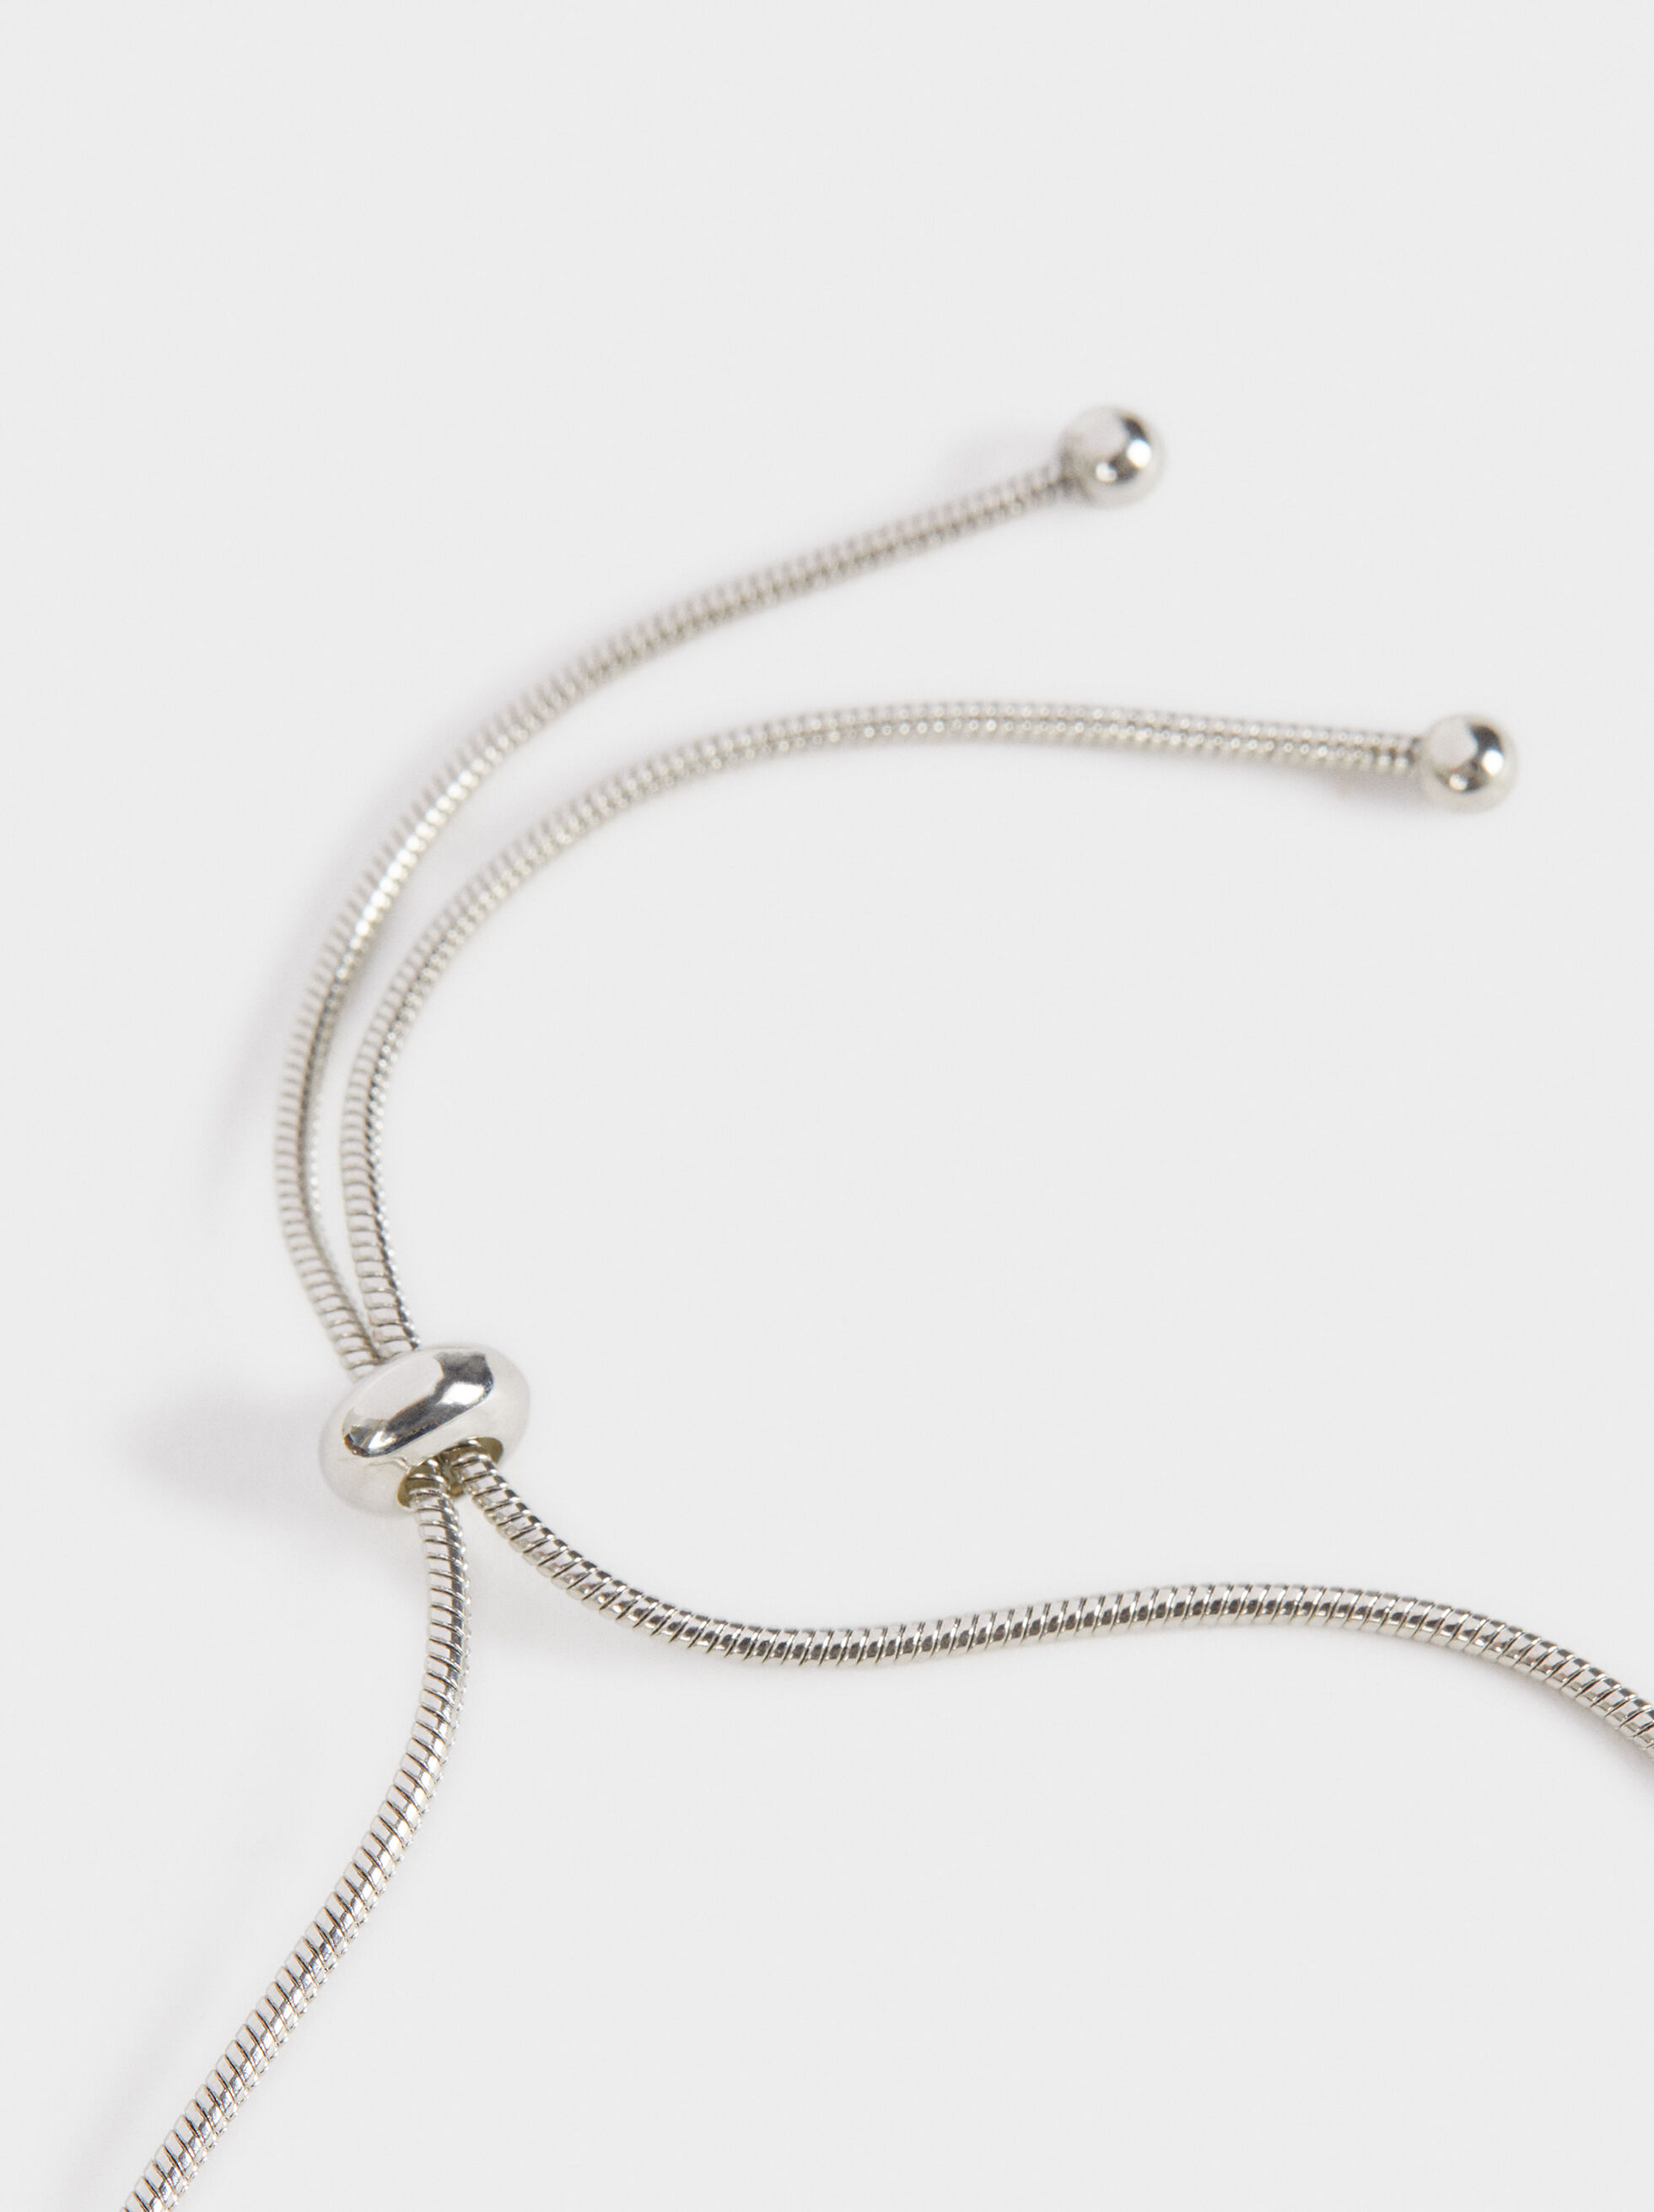 Boy'S Adjustable Heart Bracelet, Silver, hi-res